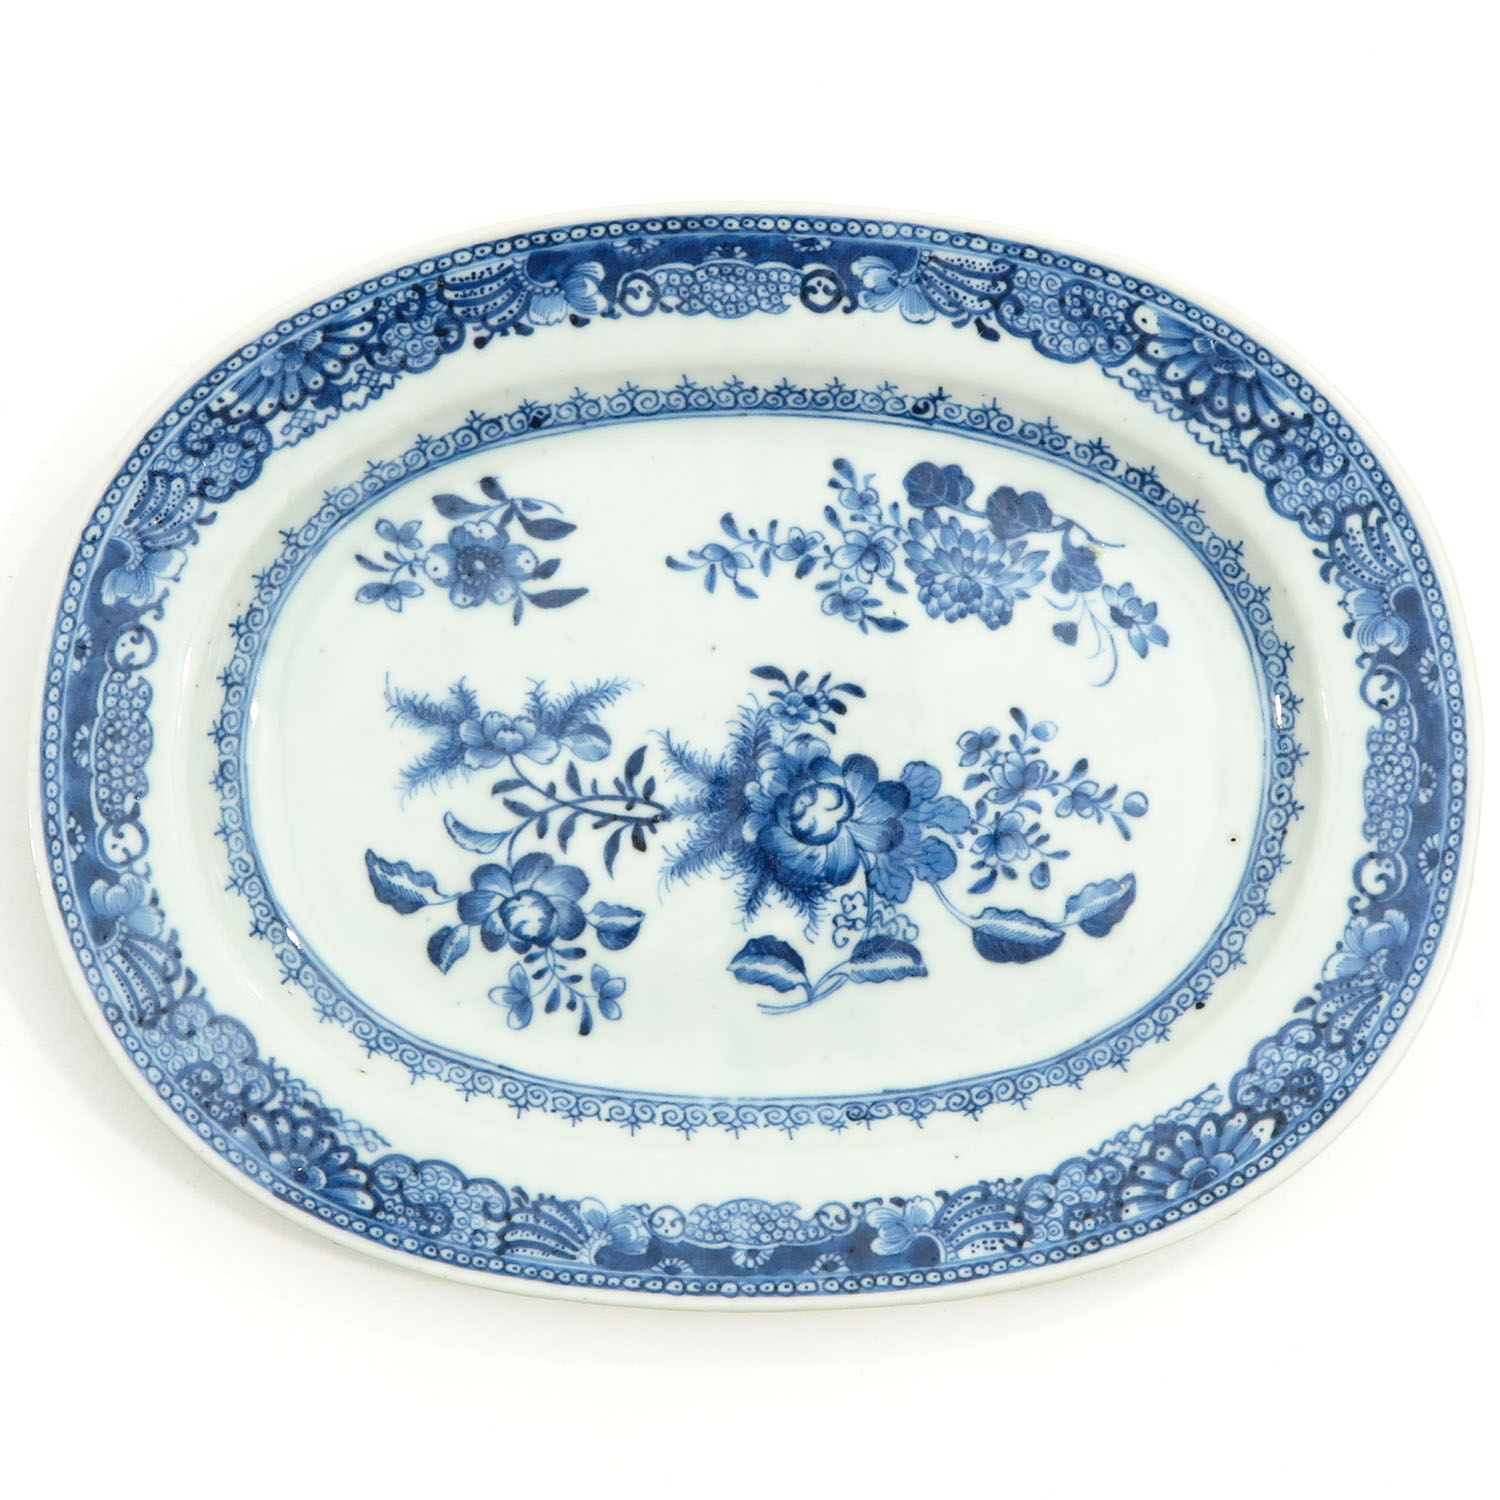 A Pair of Blue and White Chargers - Image 5 of 10